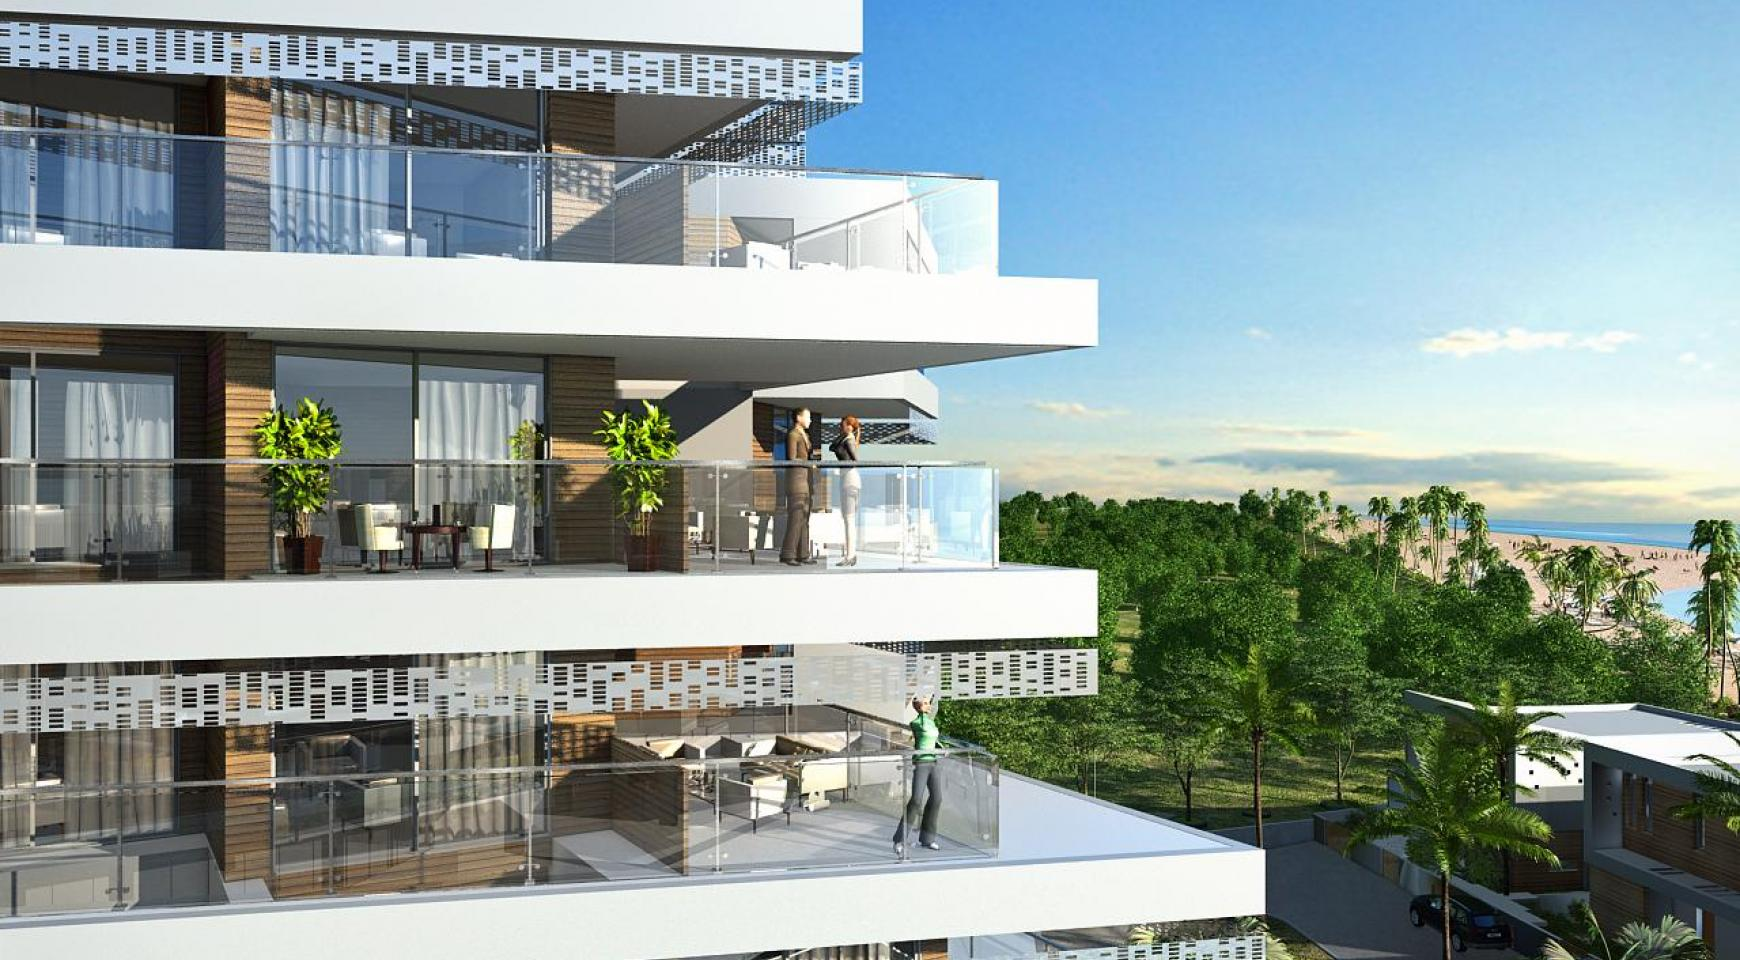 Contemporary 2 Bedroom Apartment in a New Complex by the Sea - 9